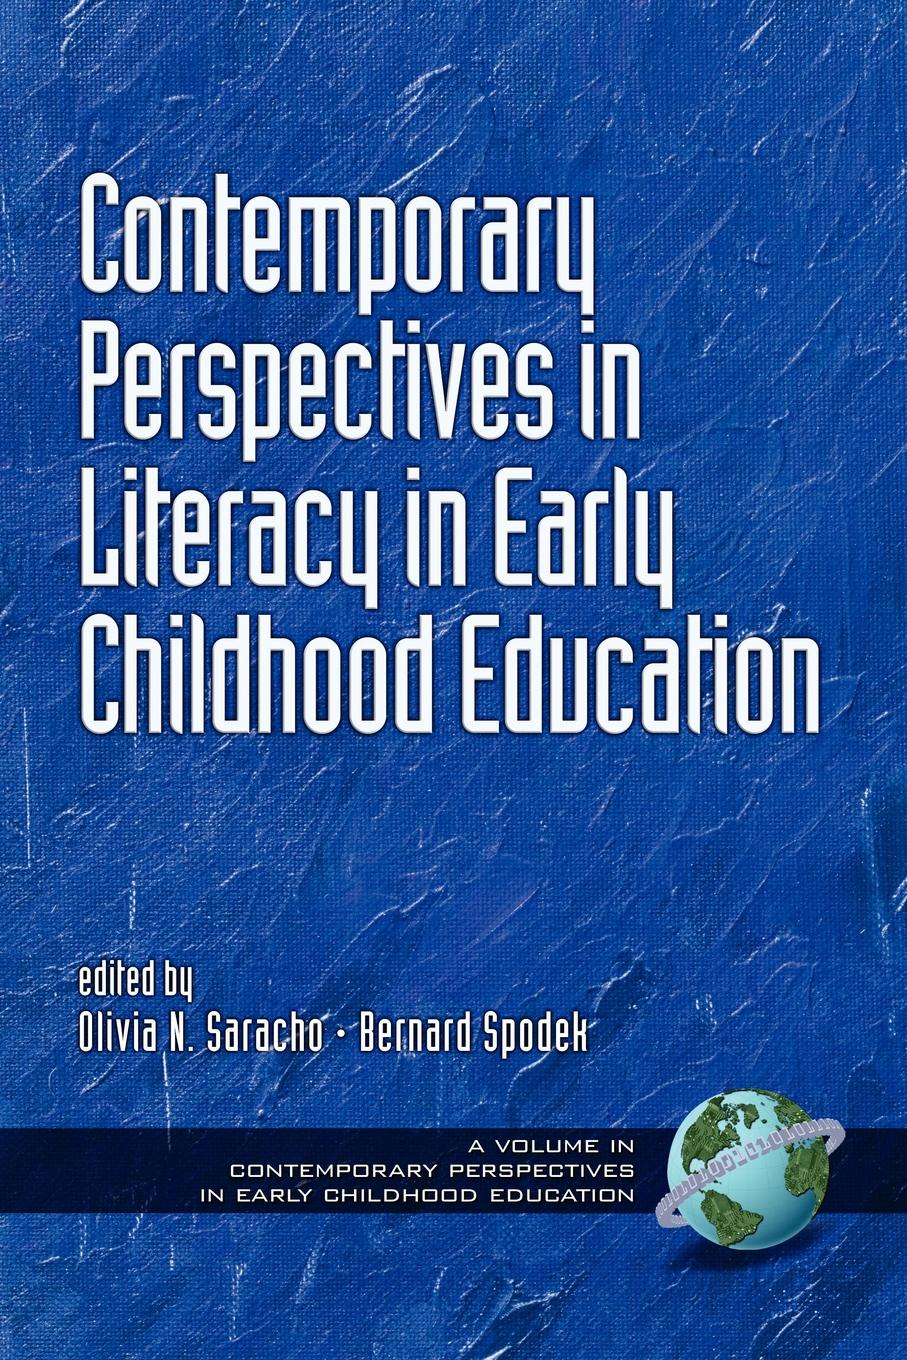 Contemporary Perspectives in Literacy in Early Childhood Education (PB) contemporary perspectives on science and technology in early childhood education pb